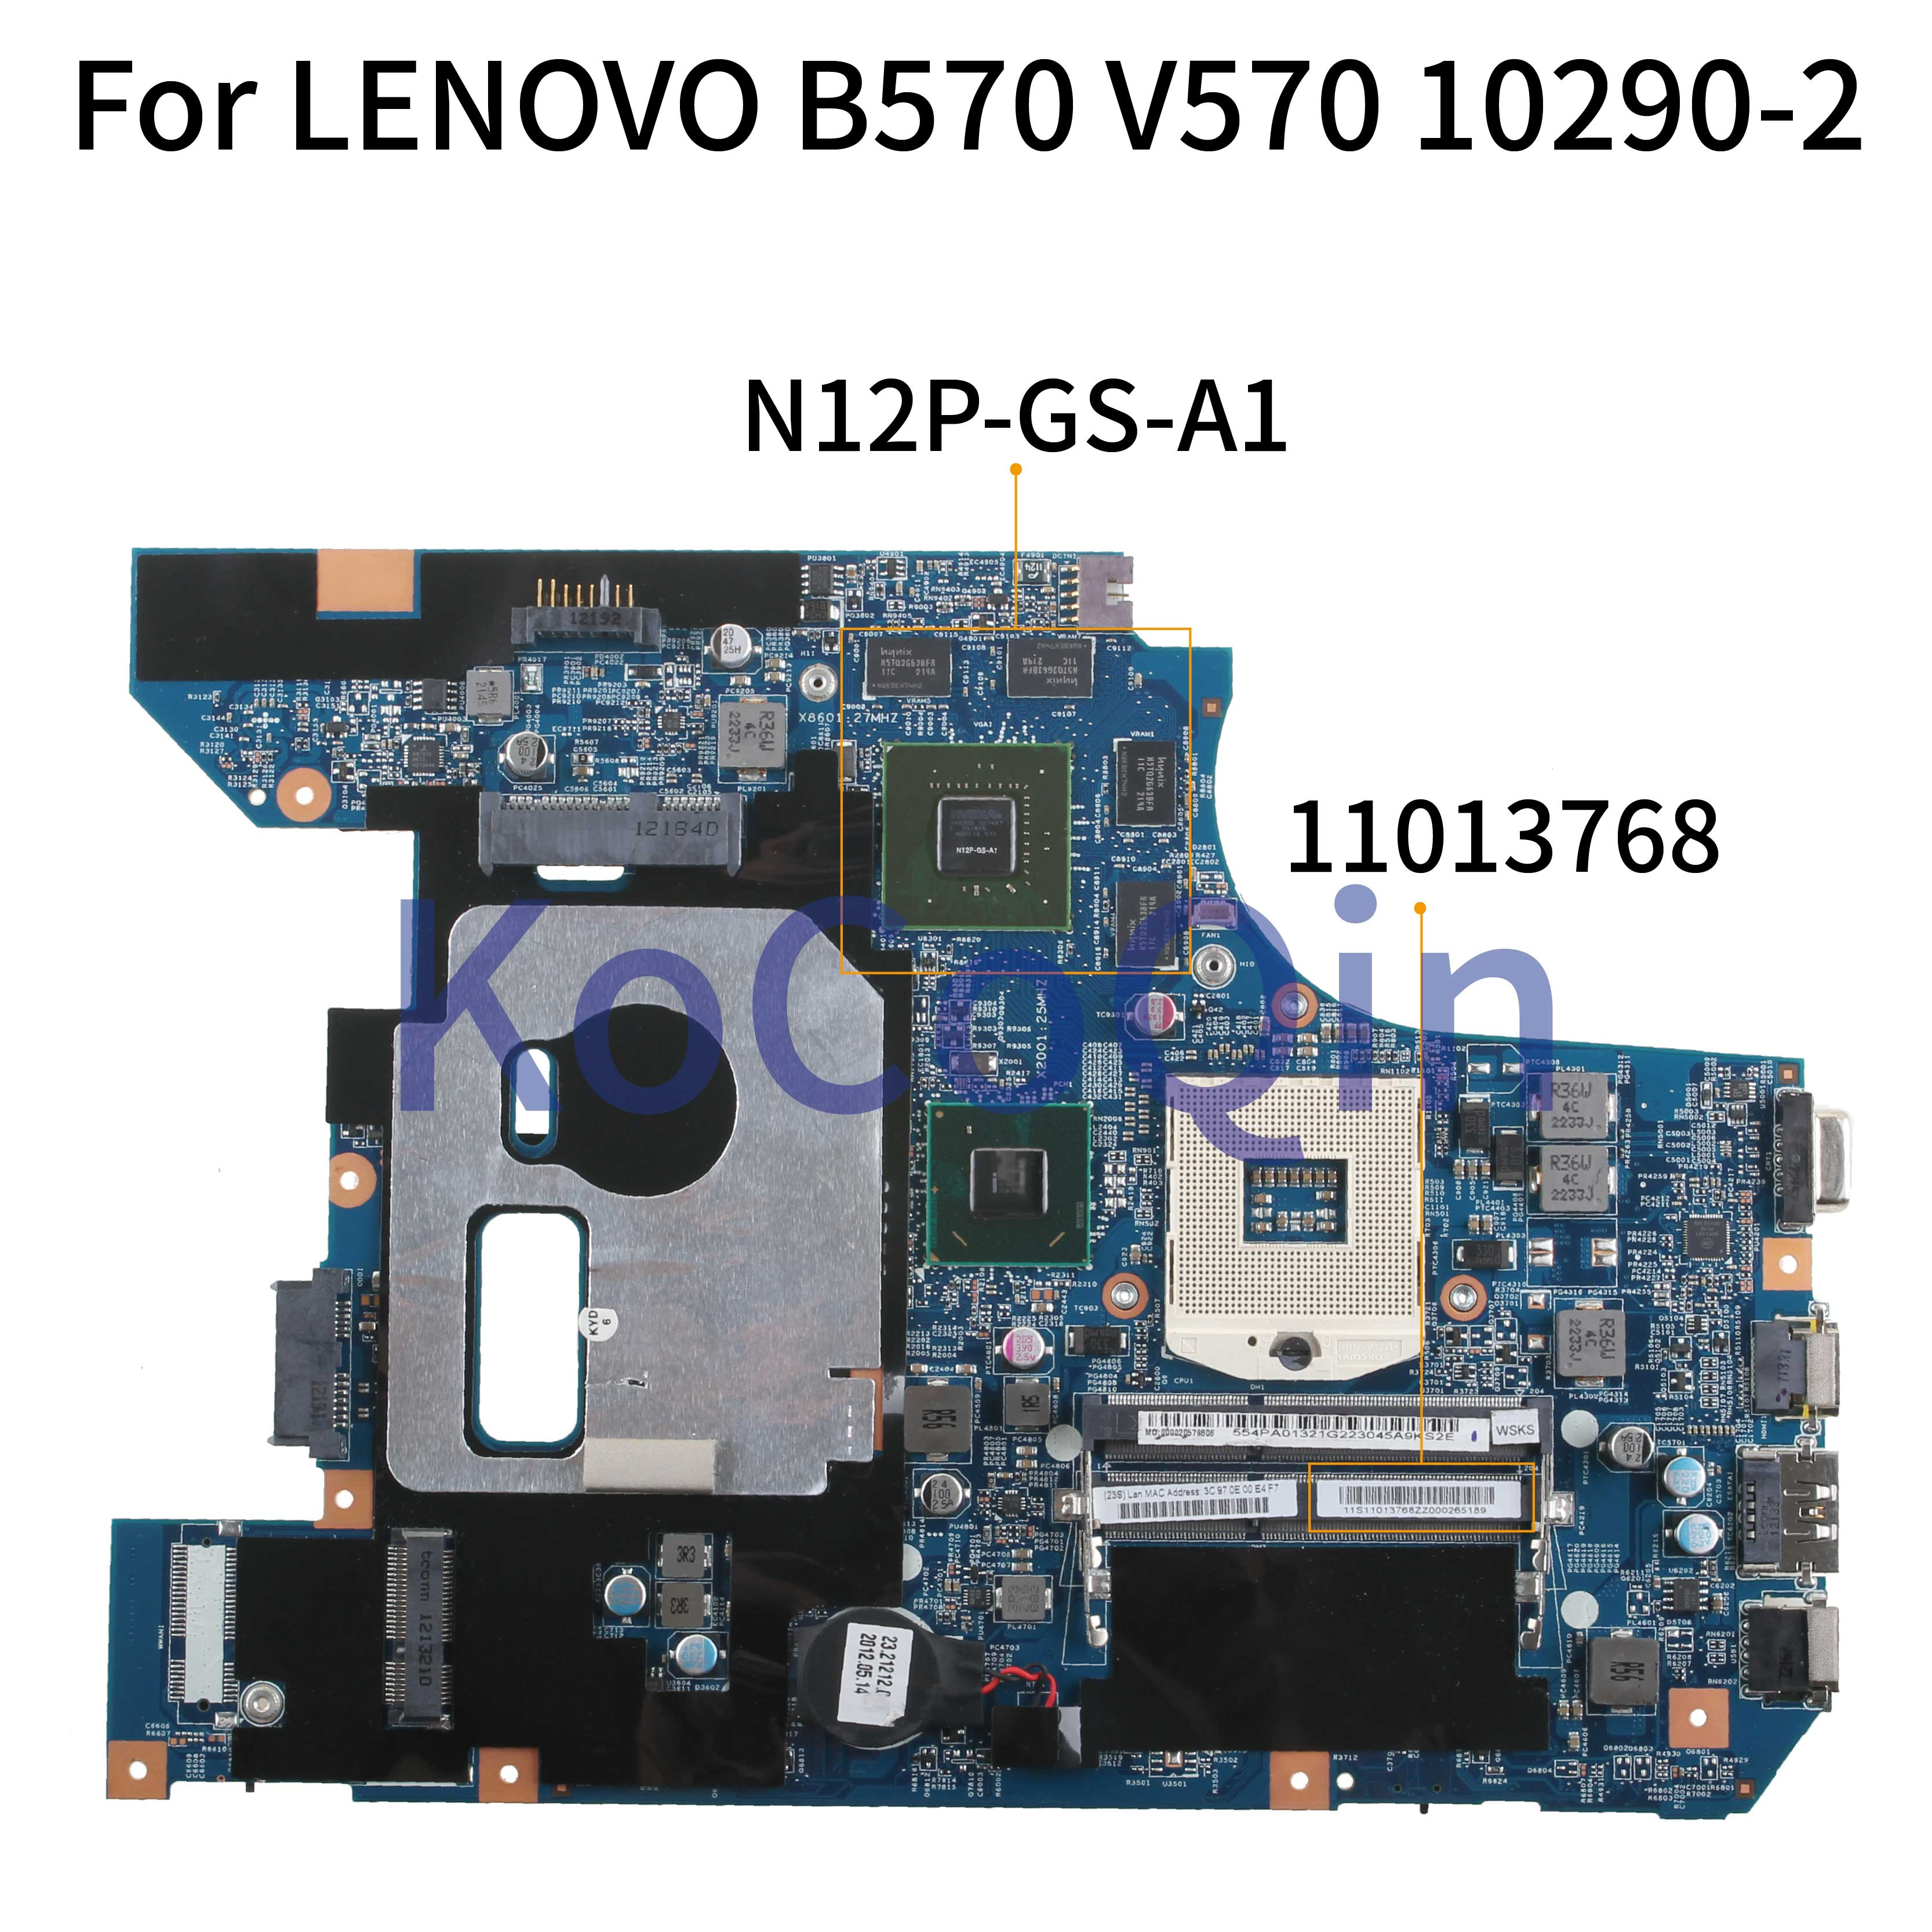 KoCoQin Laptop <font><b>motherboard</b></font> For <font><b>LENOVO</b></font> B570 <font><b>V570</b></font> B570Z HM65 N12P-GS-A1 Mainboard 10290-2 48.4PA01.021 LZ57 image